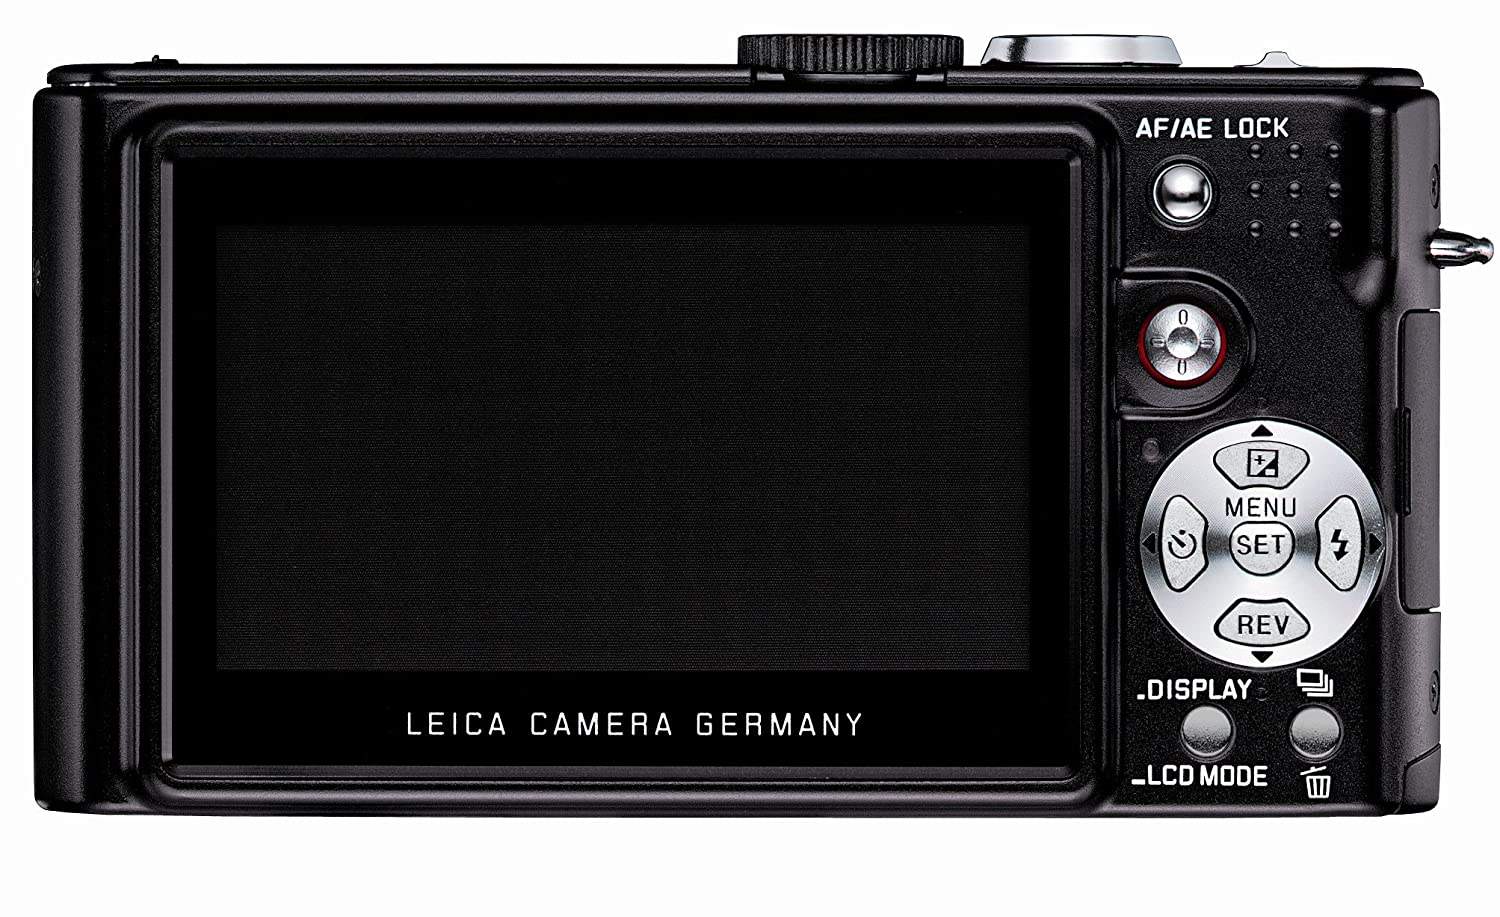 Leica D-LUX 3 10MP Digital Camera with 4x Wide Angle: Amazon.co.uk:  Electronics